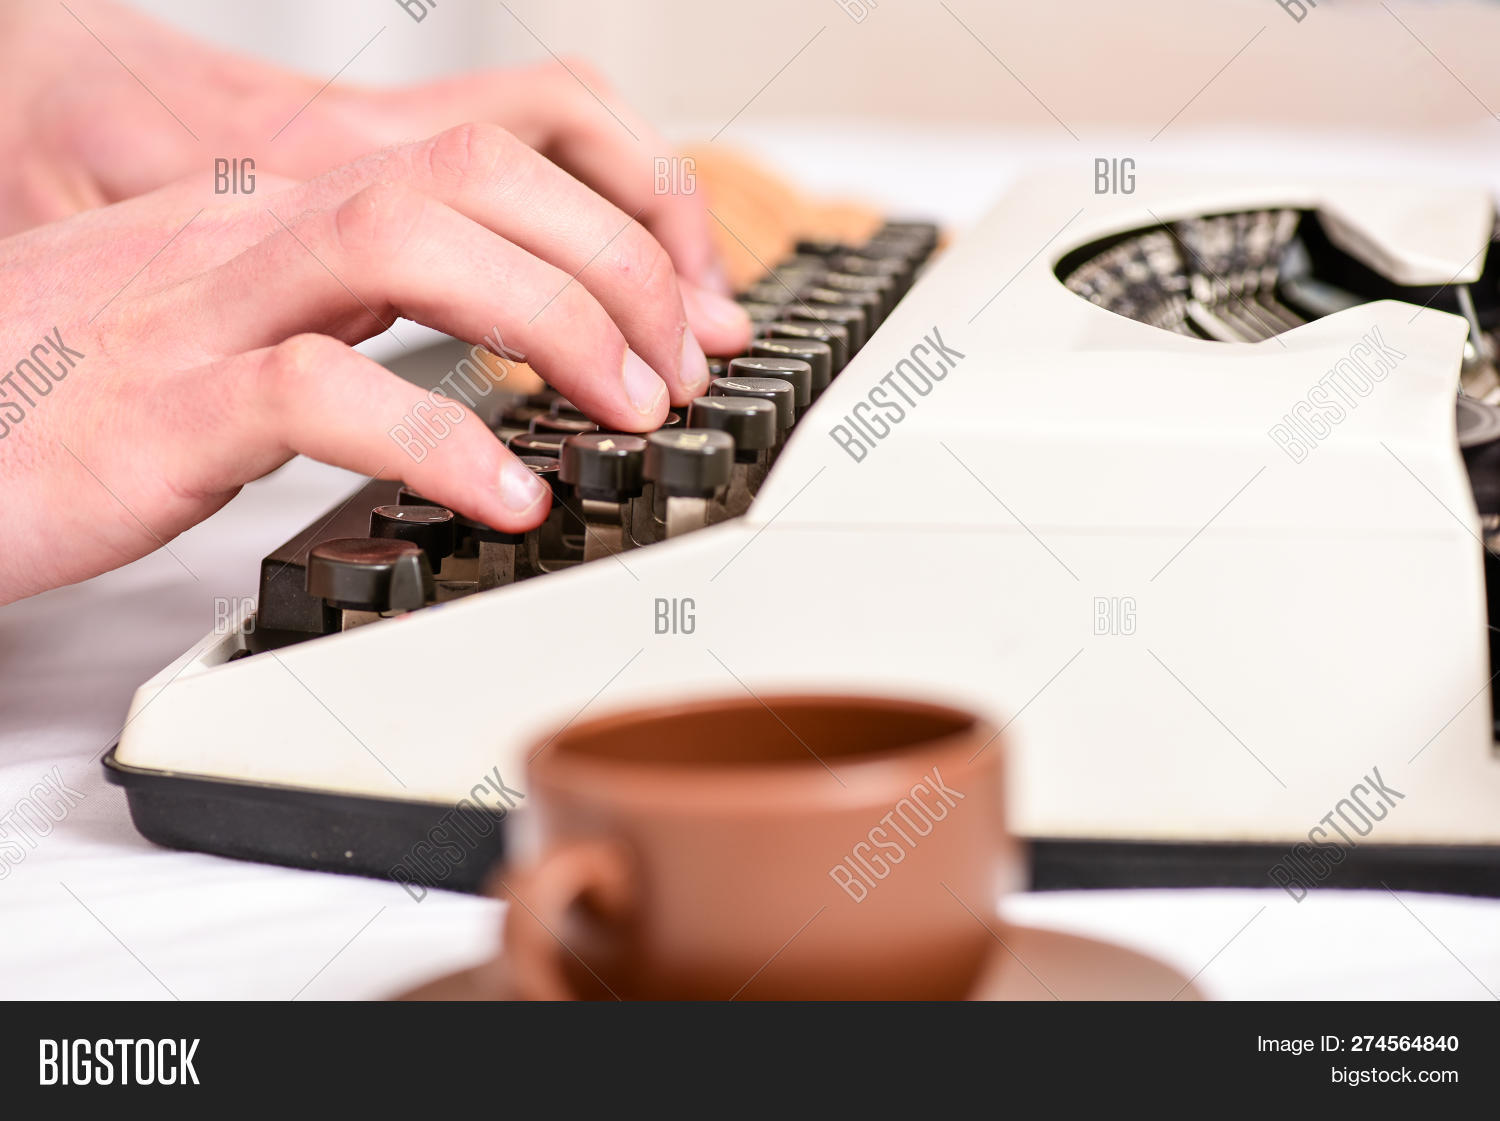 alphabet,author,button,classic,close,concept,creative,document,editor,equipment,finger,hand,journalist,key,keyboard,letter,letterpress,machine,male,mechanical,message,note,novel,old,outdated,press,print,qwerty,report,retro,routine,story,text,type,typewriter,typing,typography,up,using,vintage,white,work,write,writer,writing